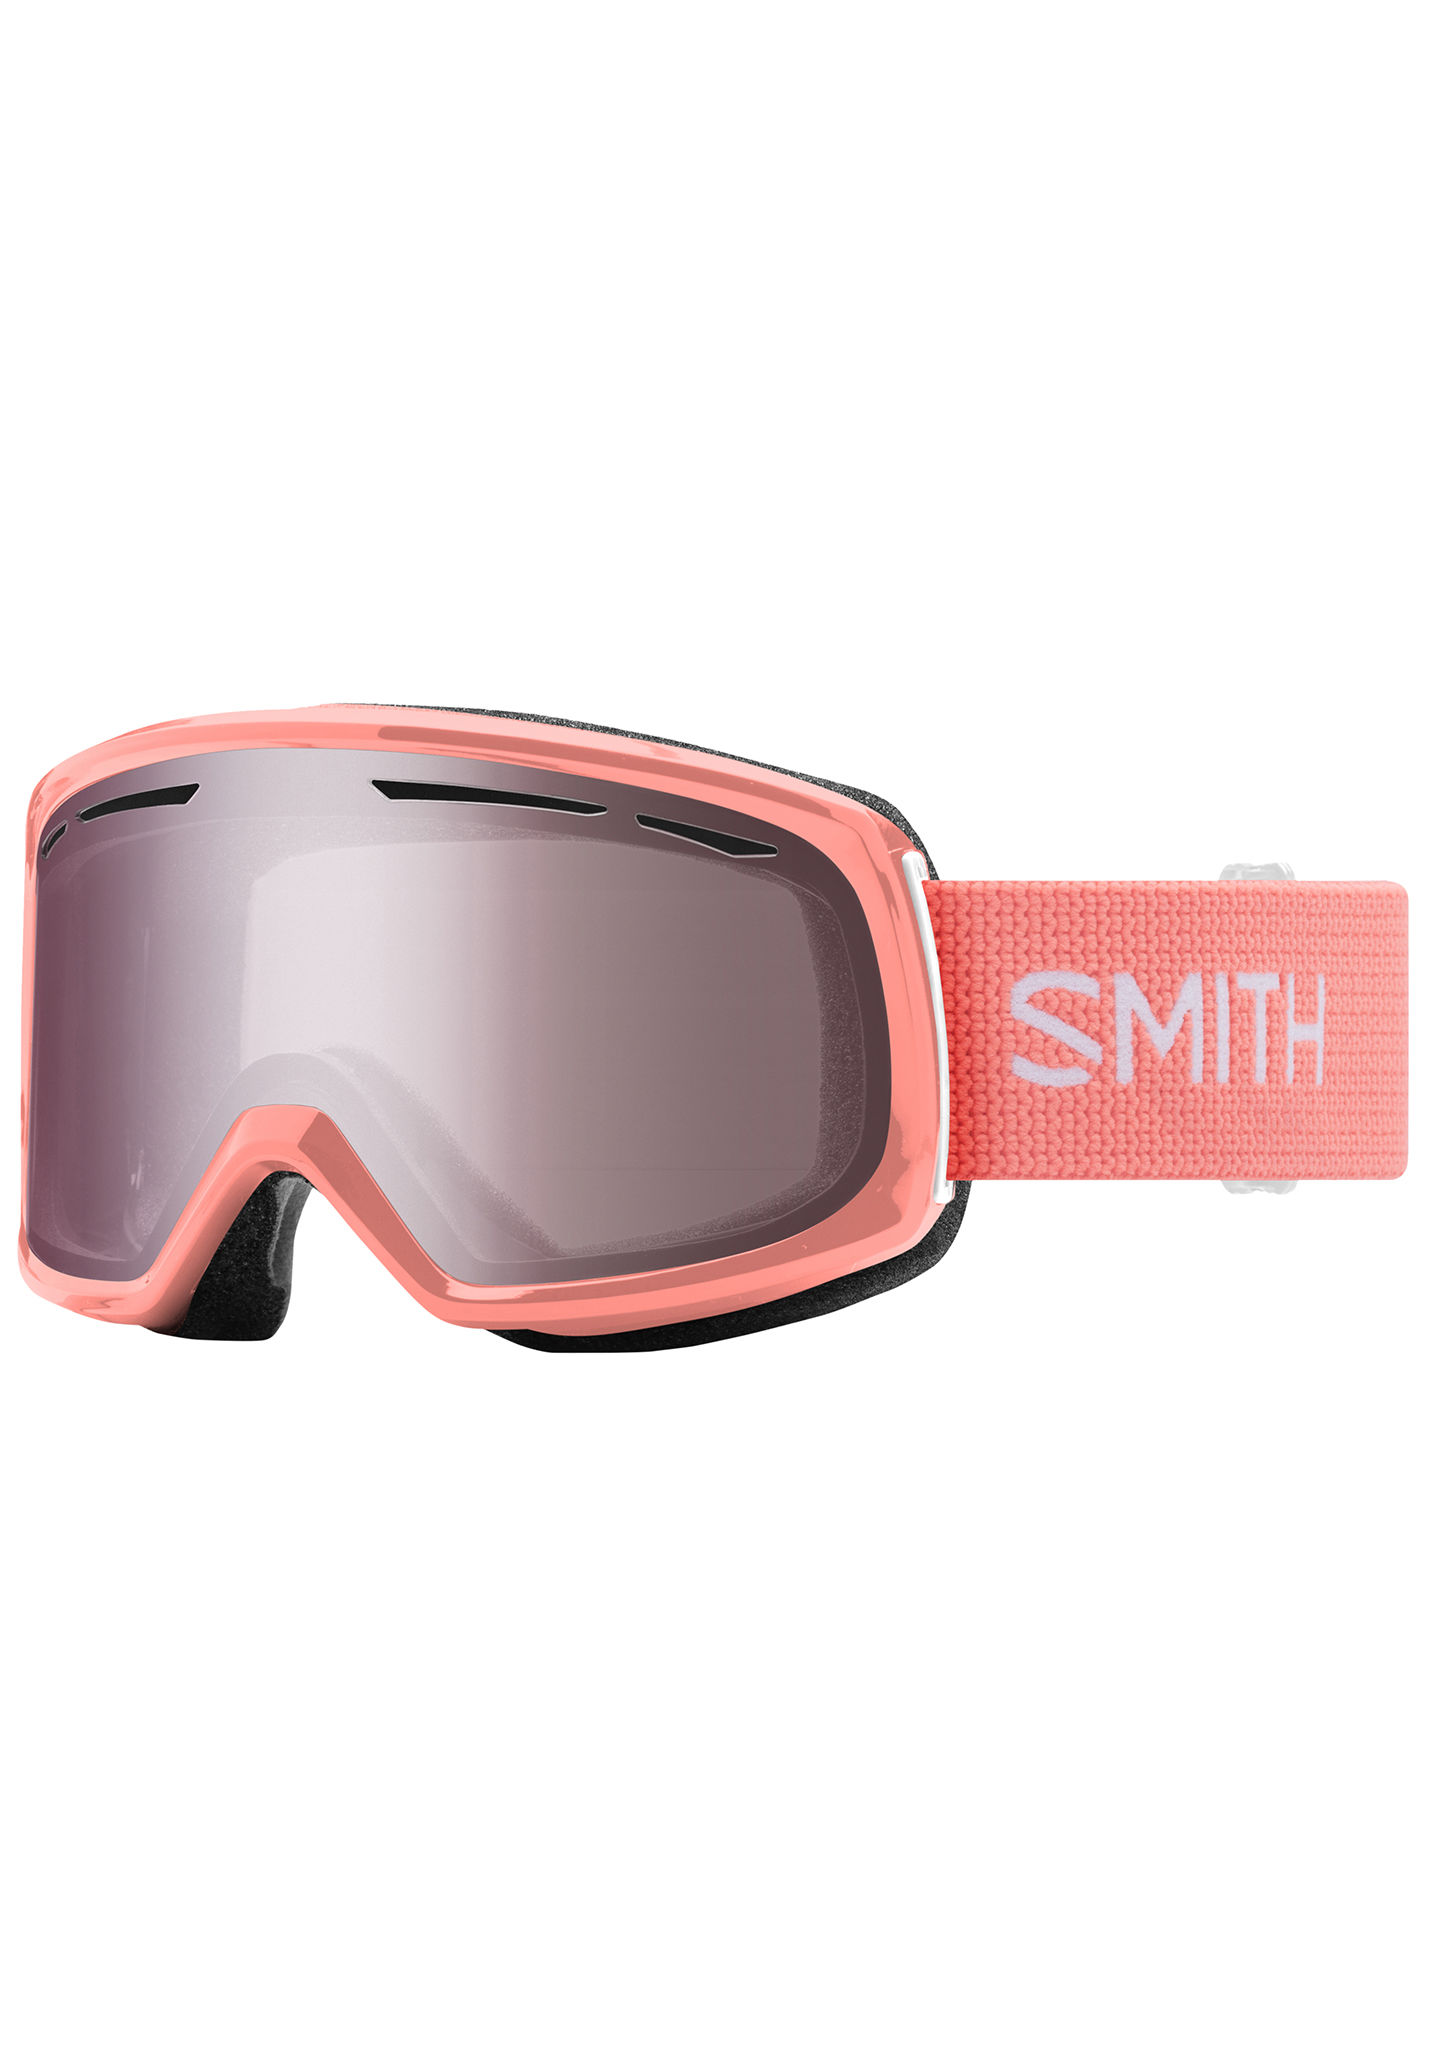 85ce27be2f7 SMITH Drift - Snowboard Goggle - Pink - Planet Sports